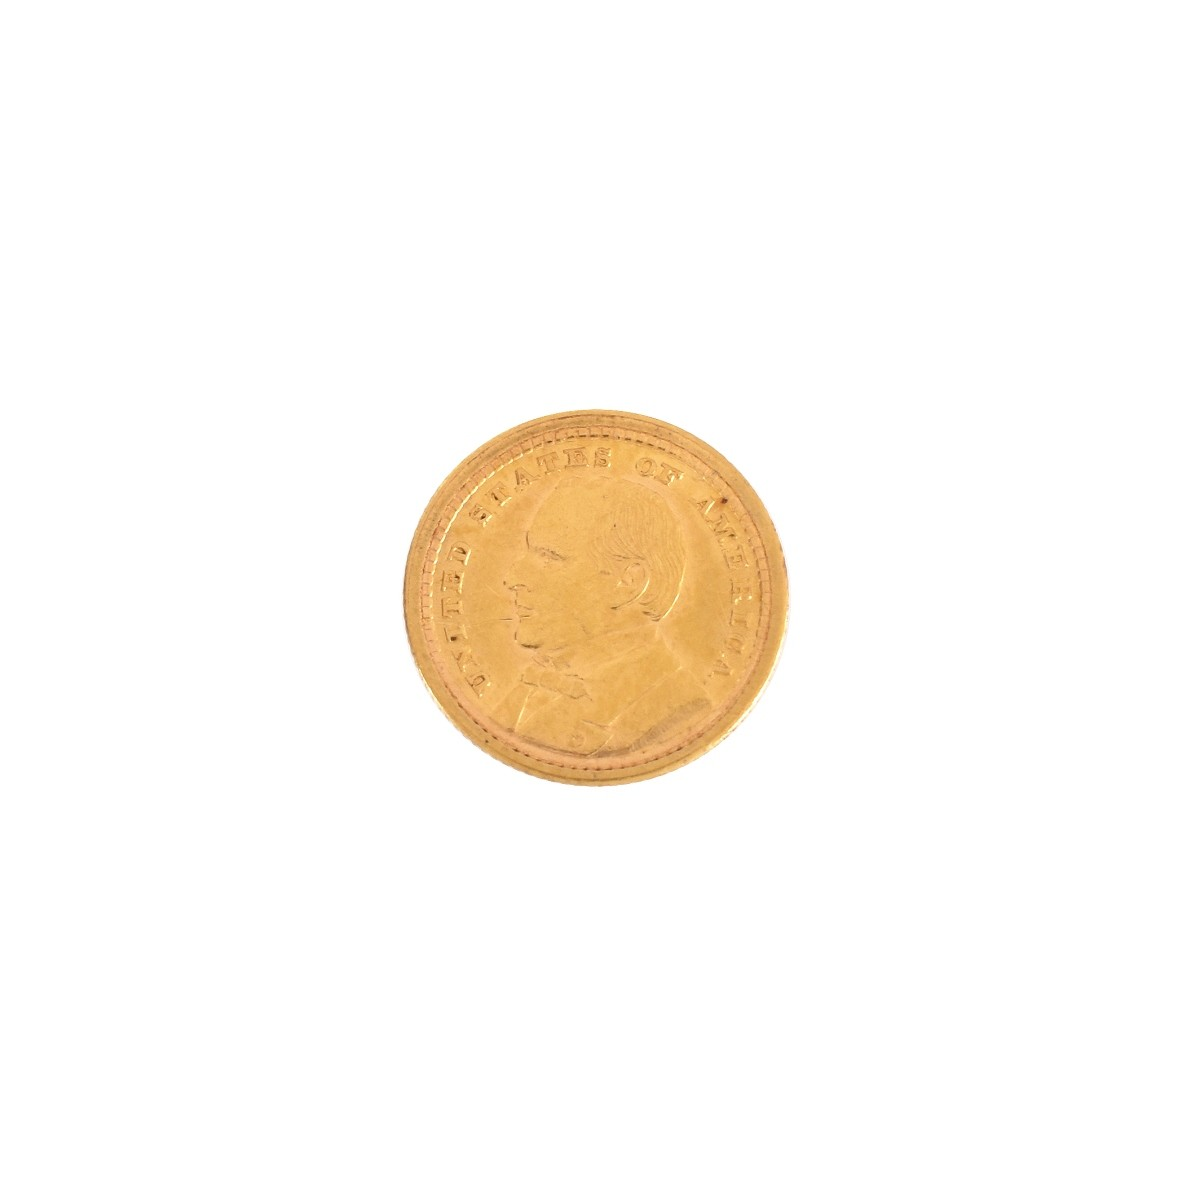 1903 US Gold McKinley $1